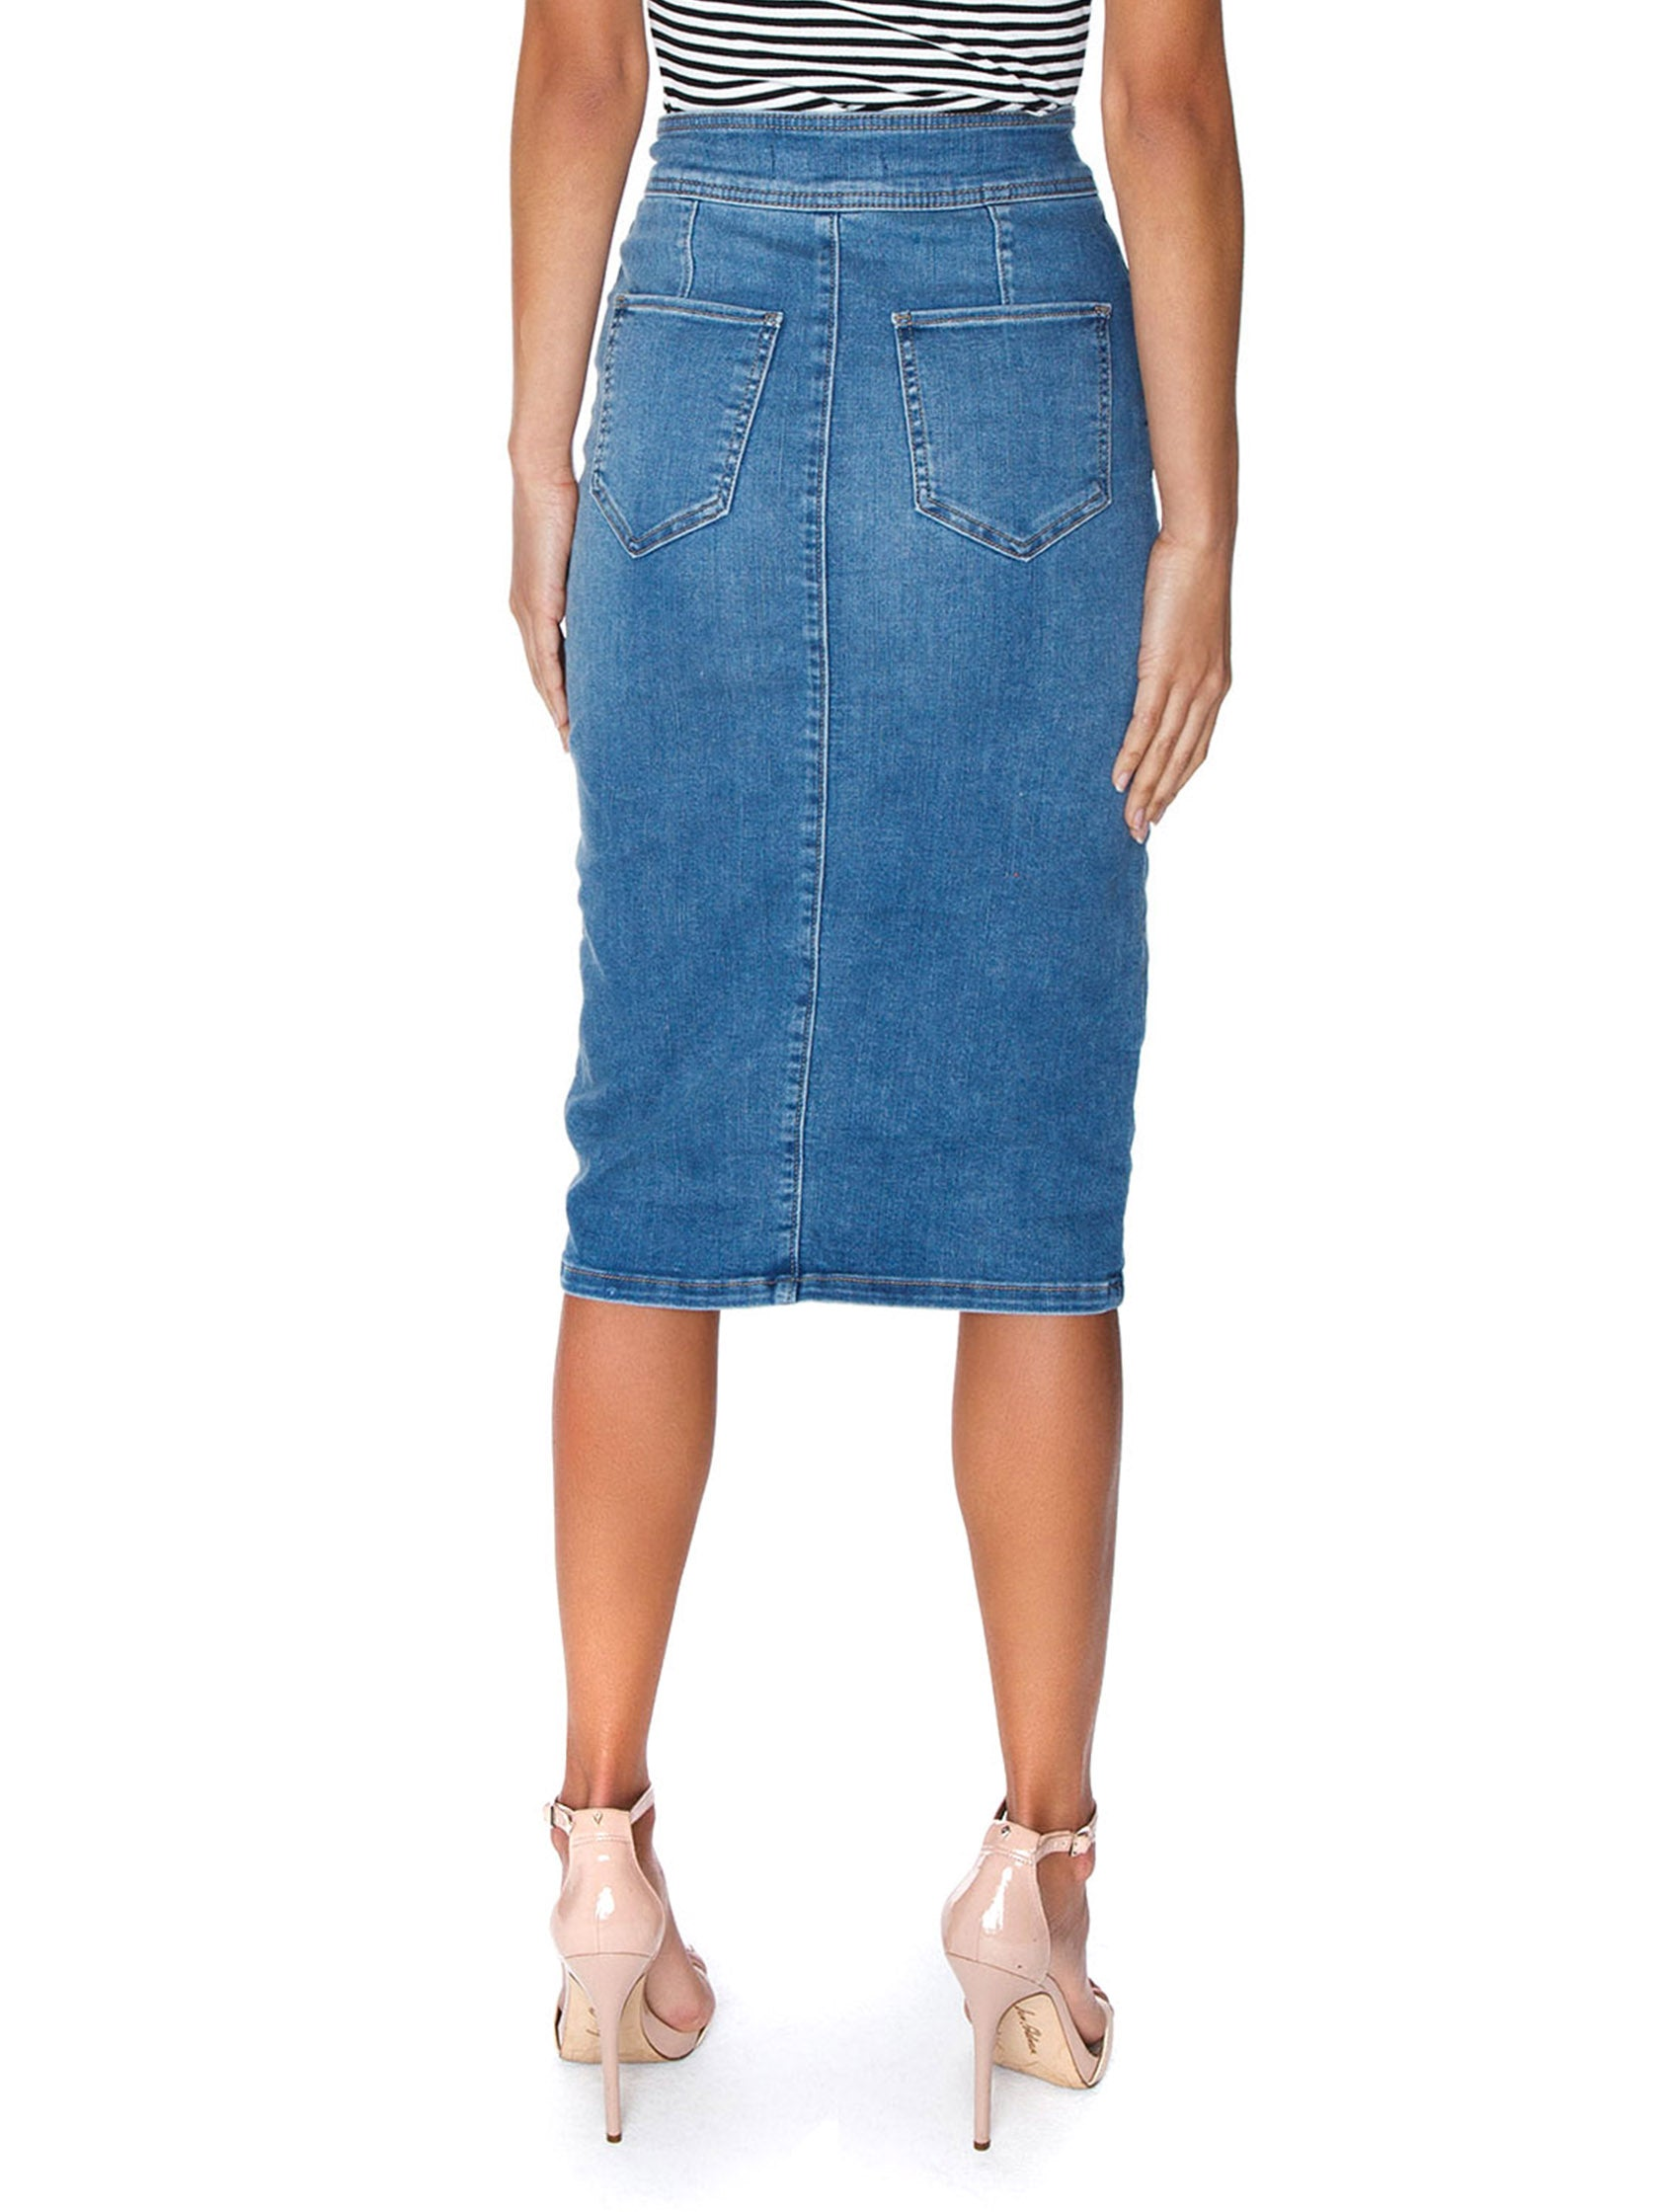 Women outfit in a skirt rental from Free People called Maddie Denim Midi Skirt